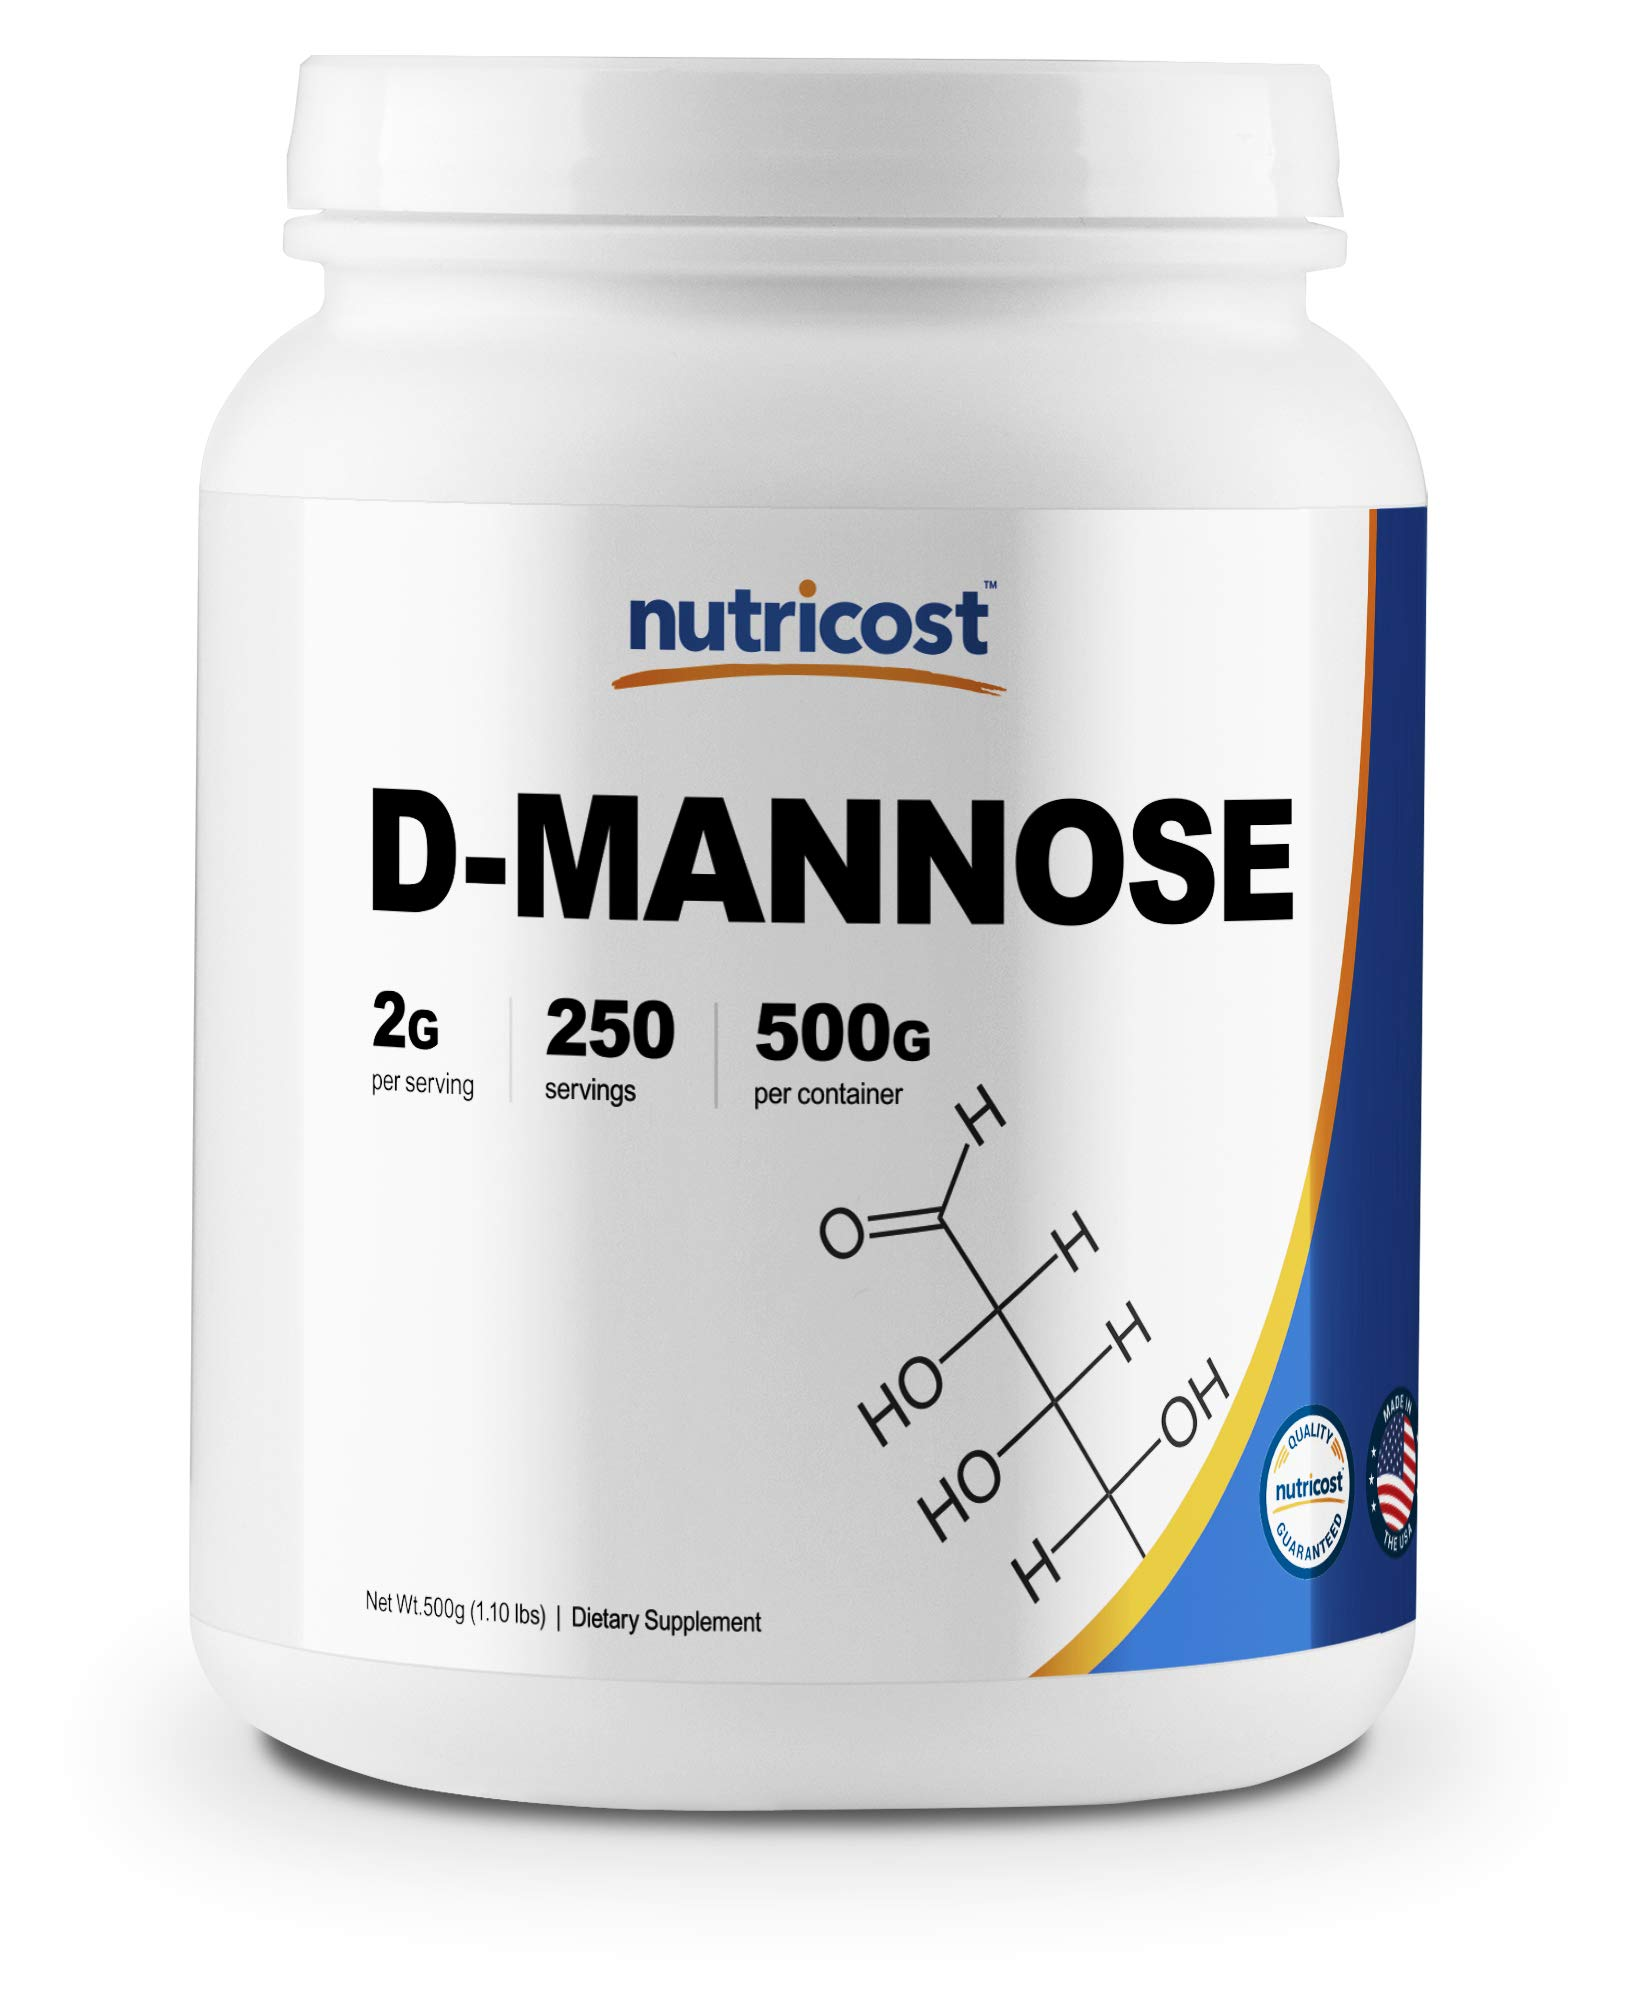 Nutricost D-Mannose Powder 500 GMS, 2g Serving, Non-GMO, Gluten Free by Nutricost